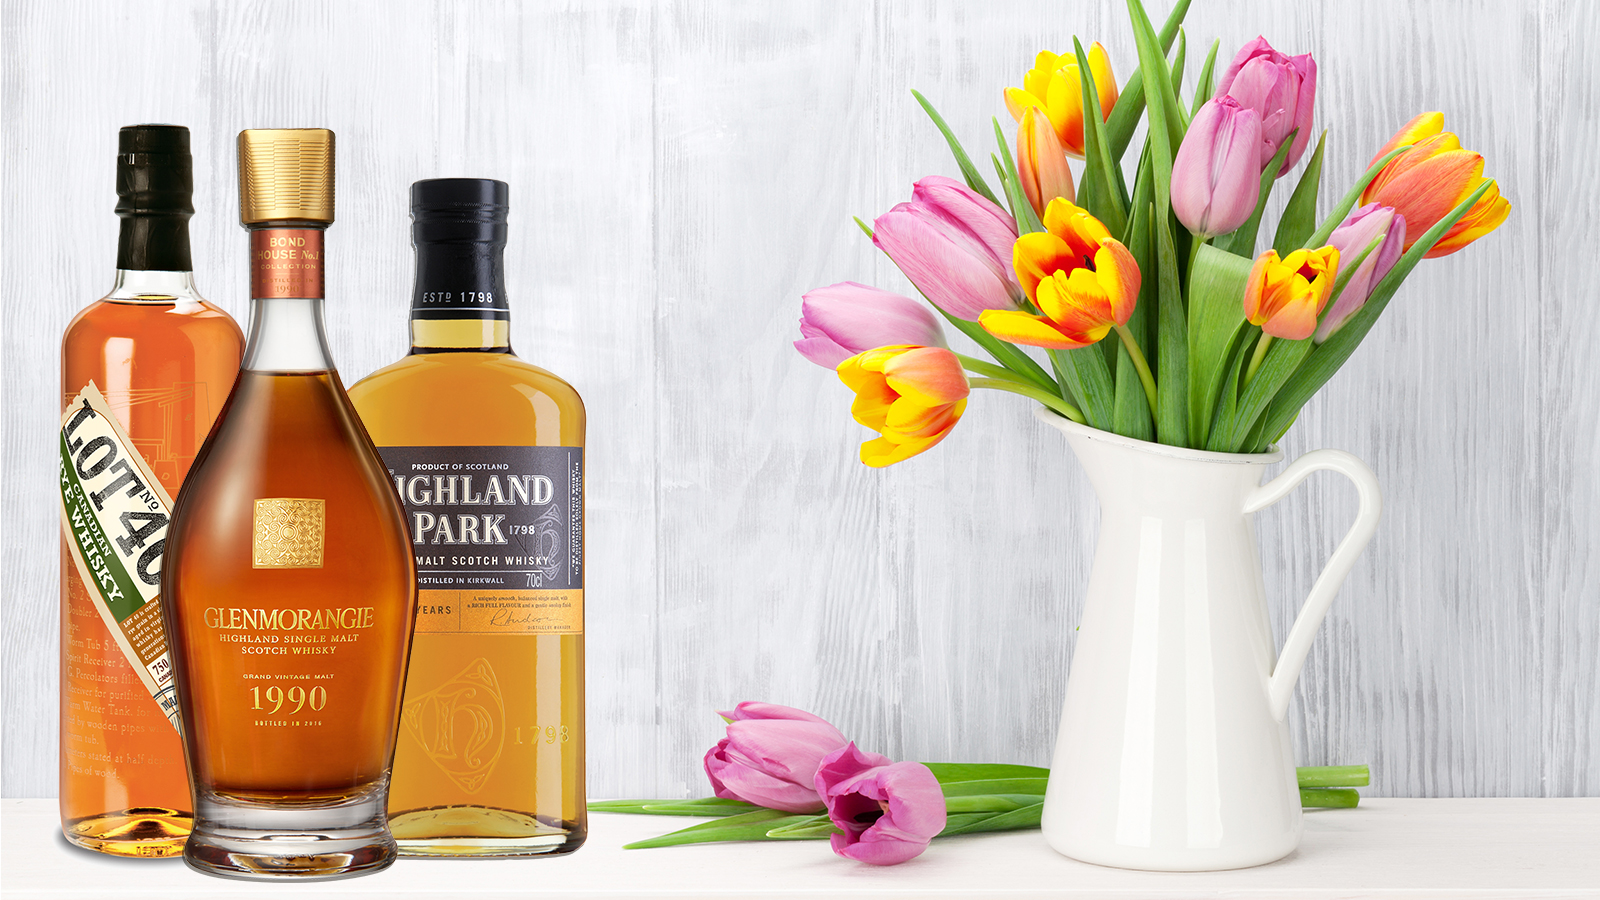 9 Floral Whiskies To Gift This Mother's Day Instead of Flowers Whisky Advocate